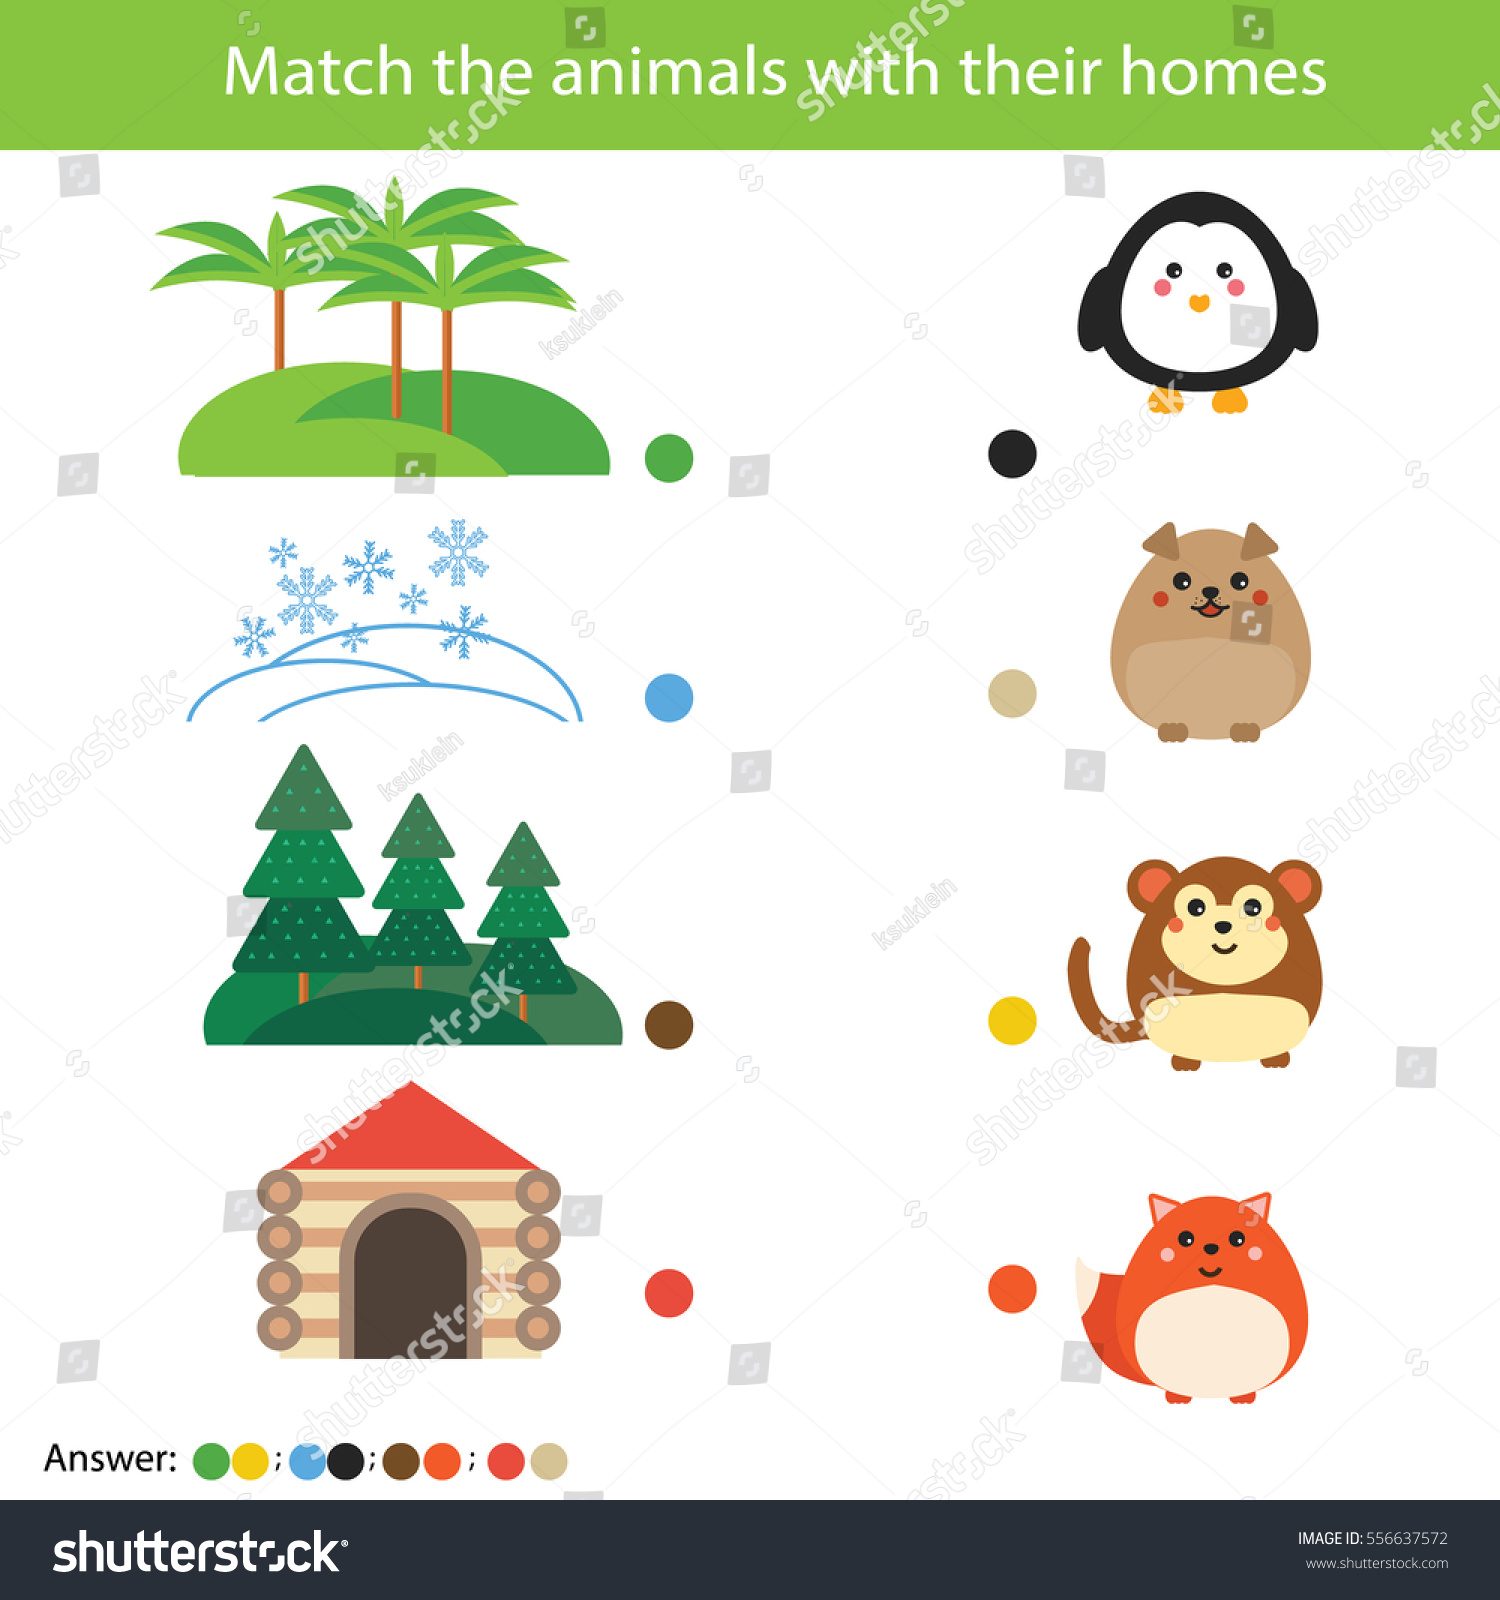 worksheet Animal Homes Worksheets matching children education game match animals stock vector with their homes learning nature theme activity for